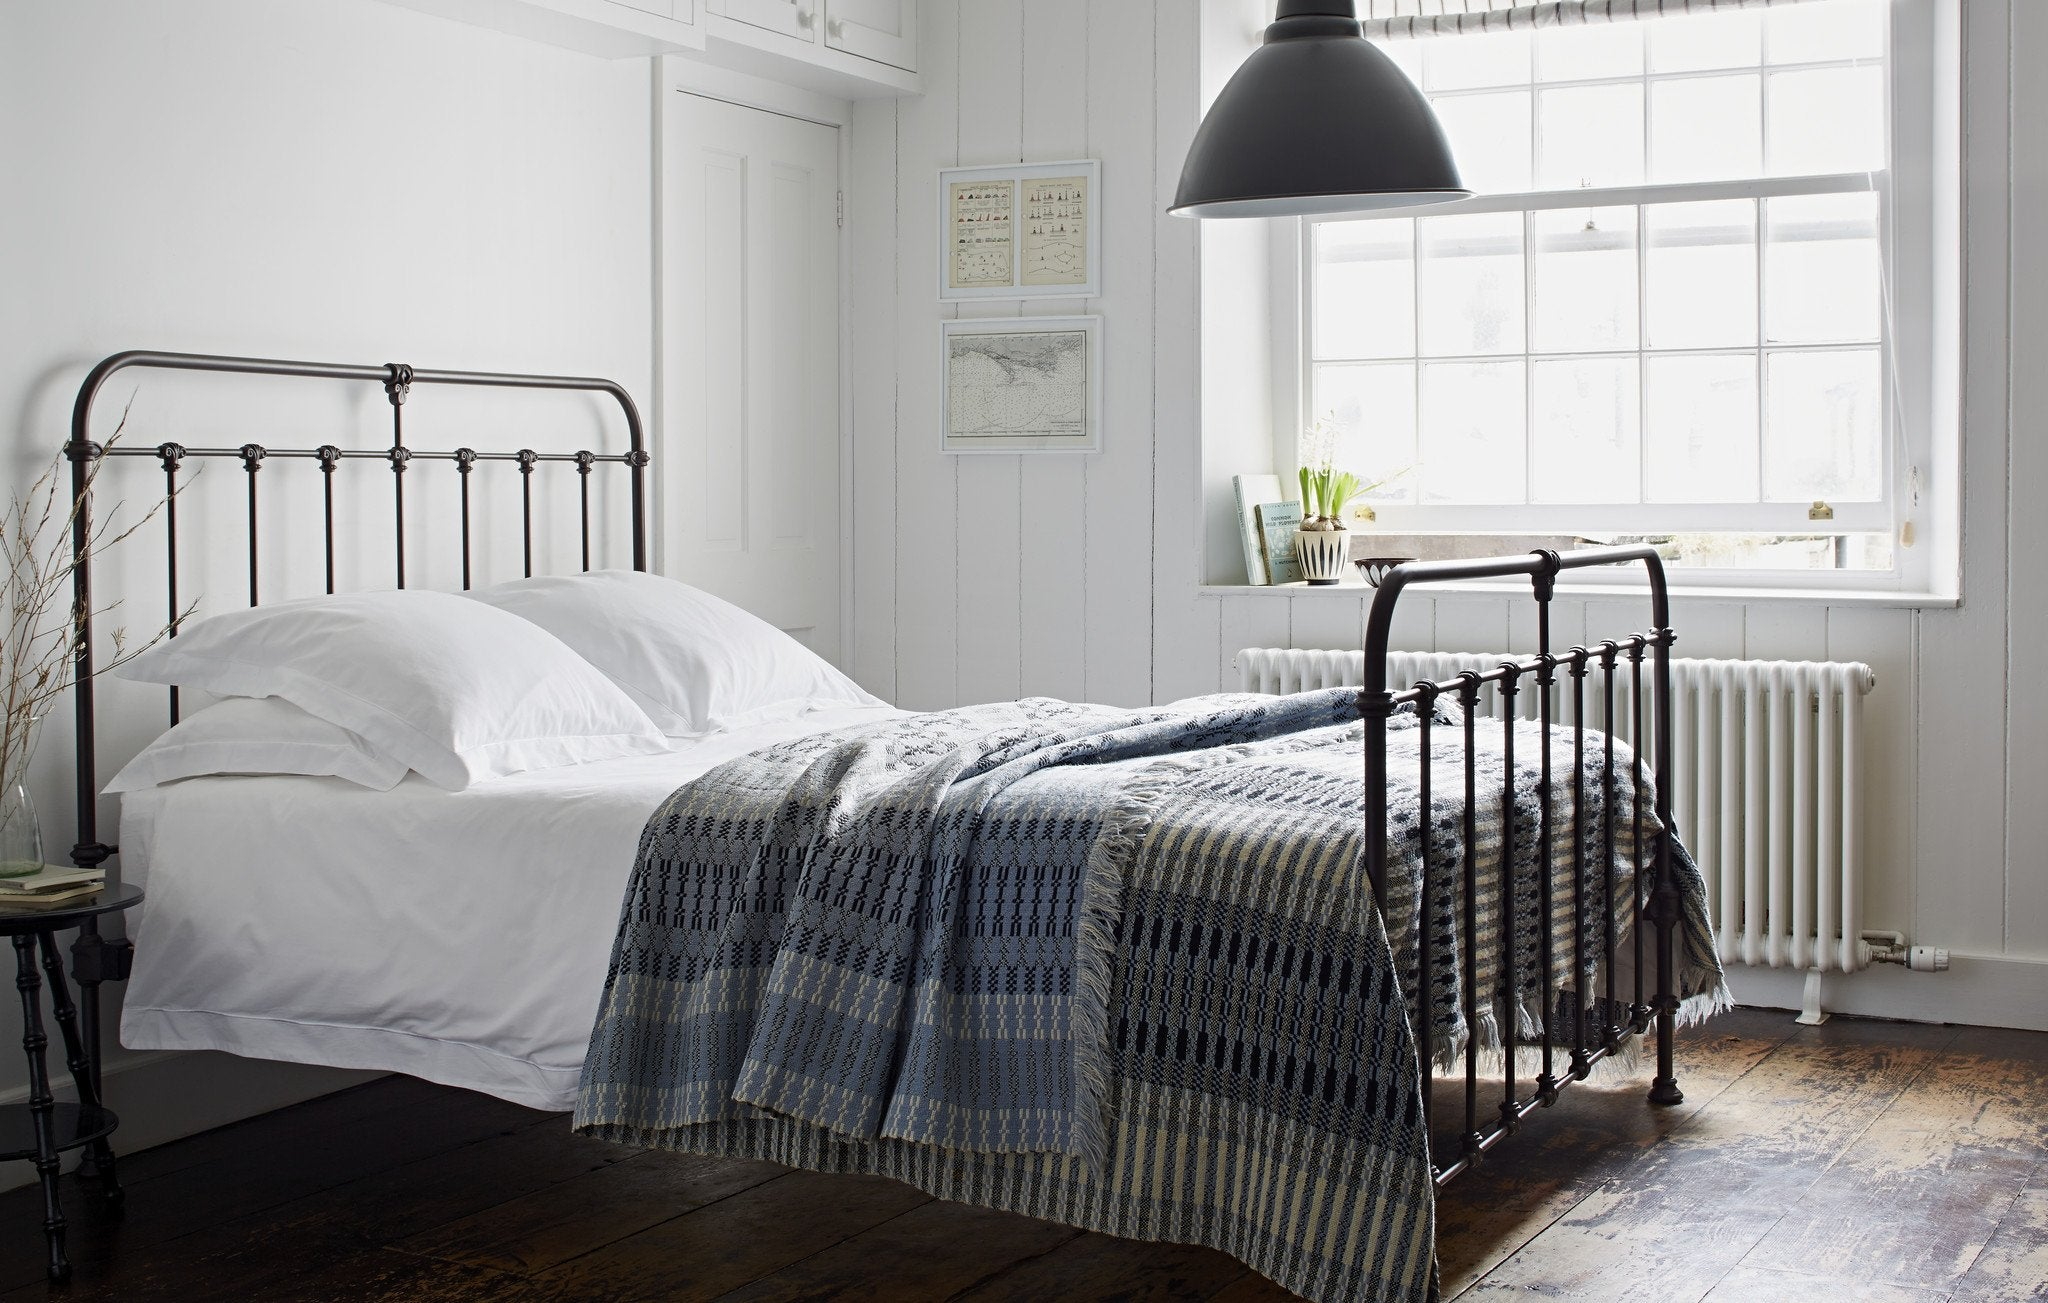 5 Ways To Create A Hygge Bedroom | The Cornish Bed Company UK